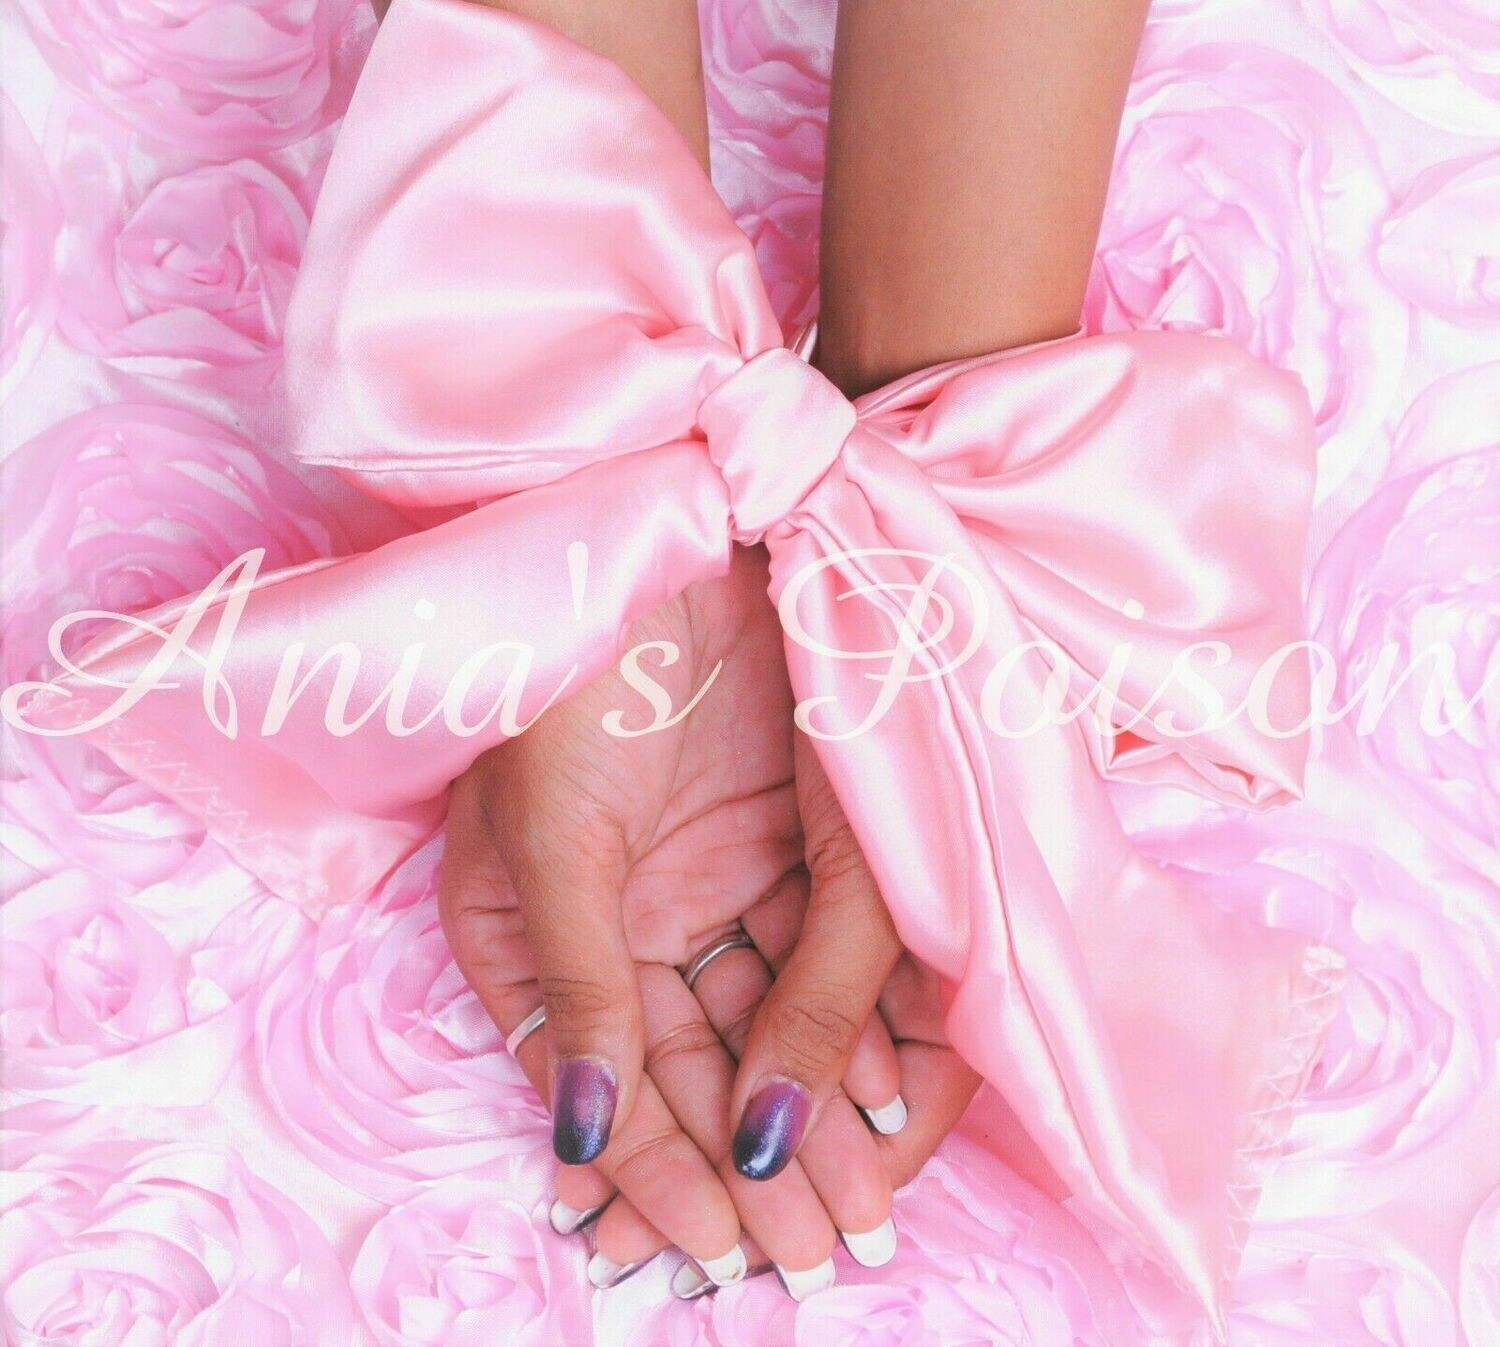 Pure Satin shiny silky smooth double sided Hand Ties or blind fold